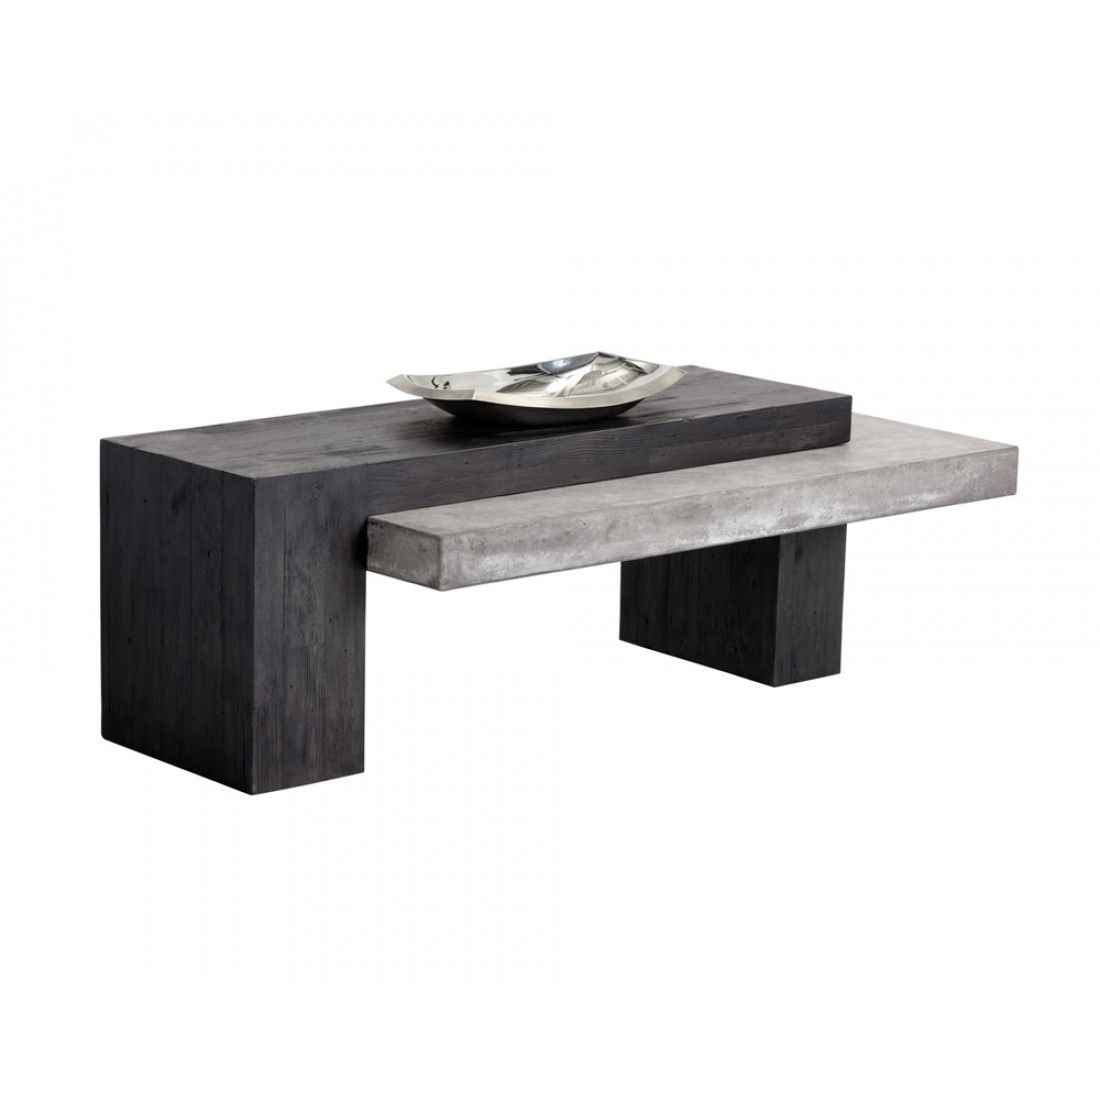 Zoron Coffee Table Rectangular Coffee Unique Coffee Table And - Rectangular concrete coffee table